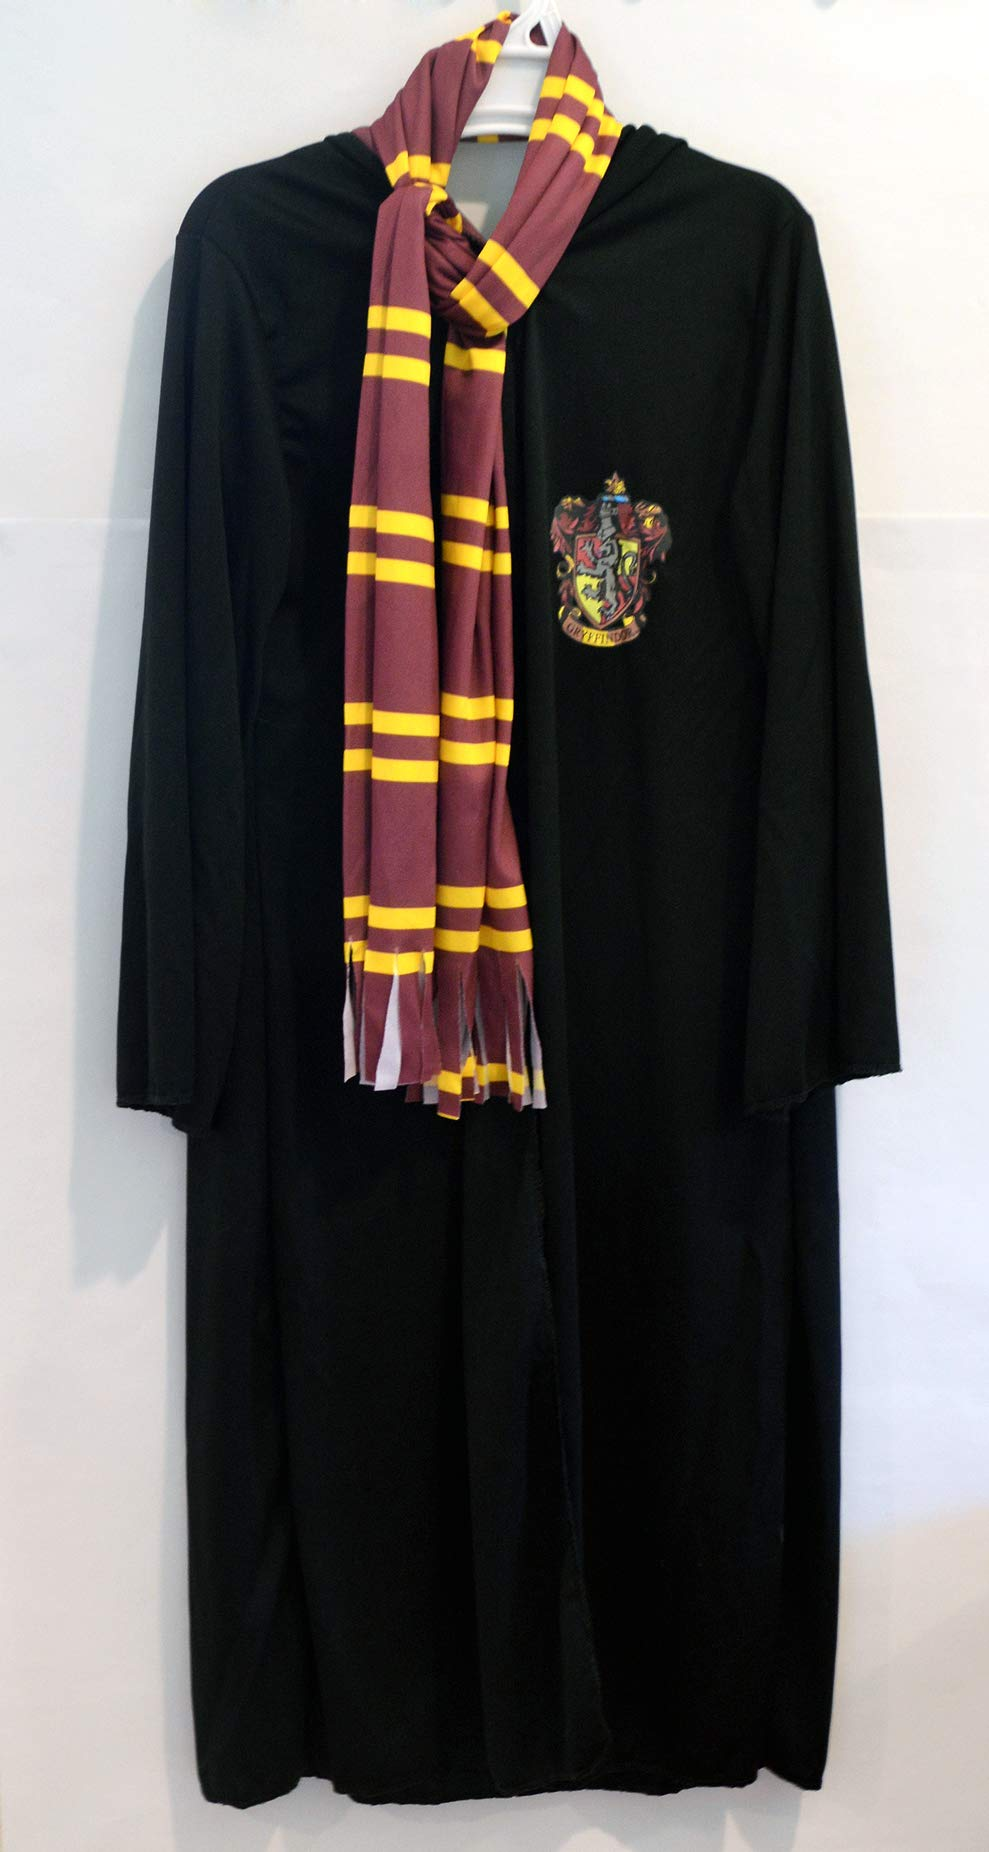 Rubie's Harry Potter Dress-Up Trunk by Imagine by Rubie's (Image #8)